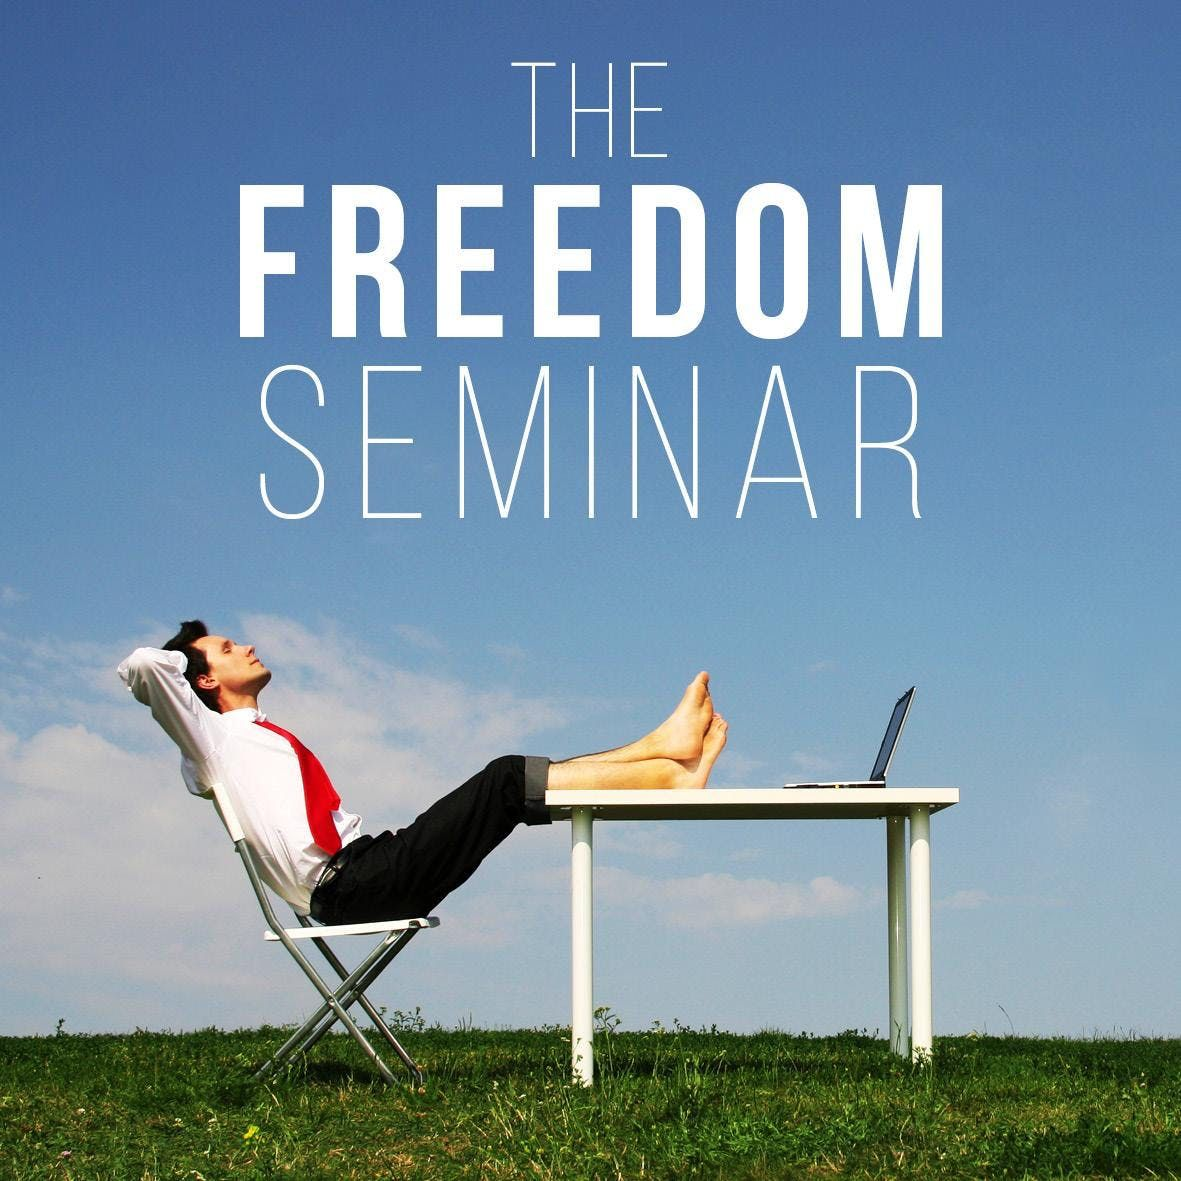 Freedom Seminar - Getting out of the Business Owners Trap